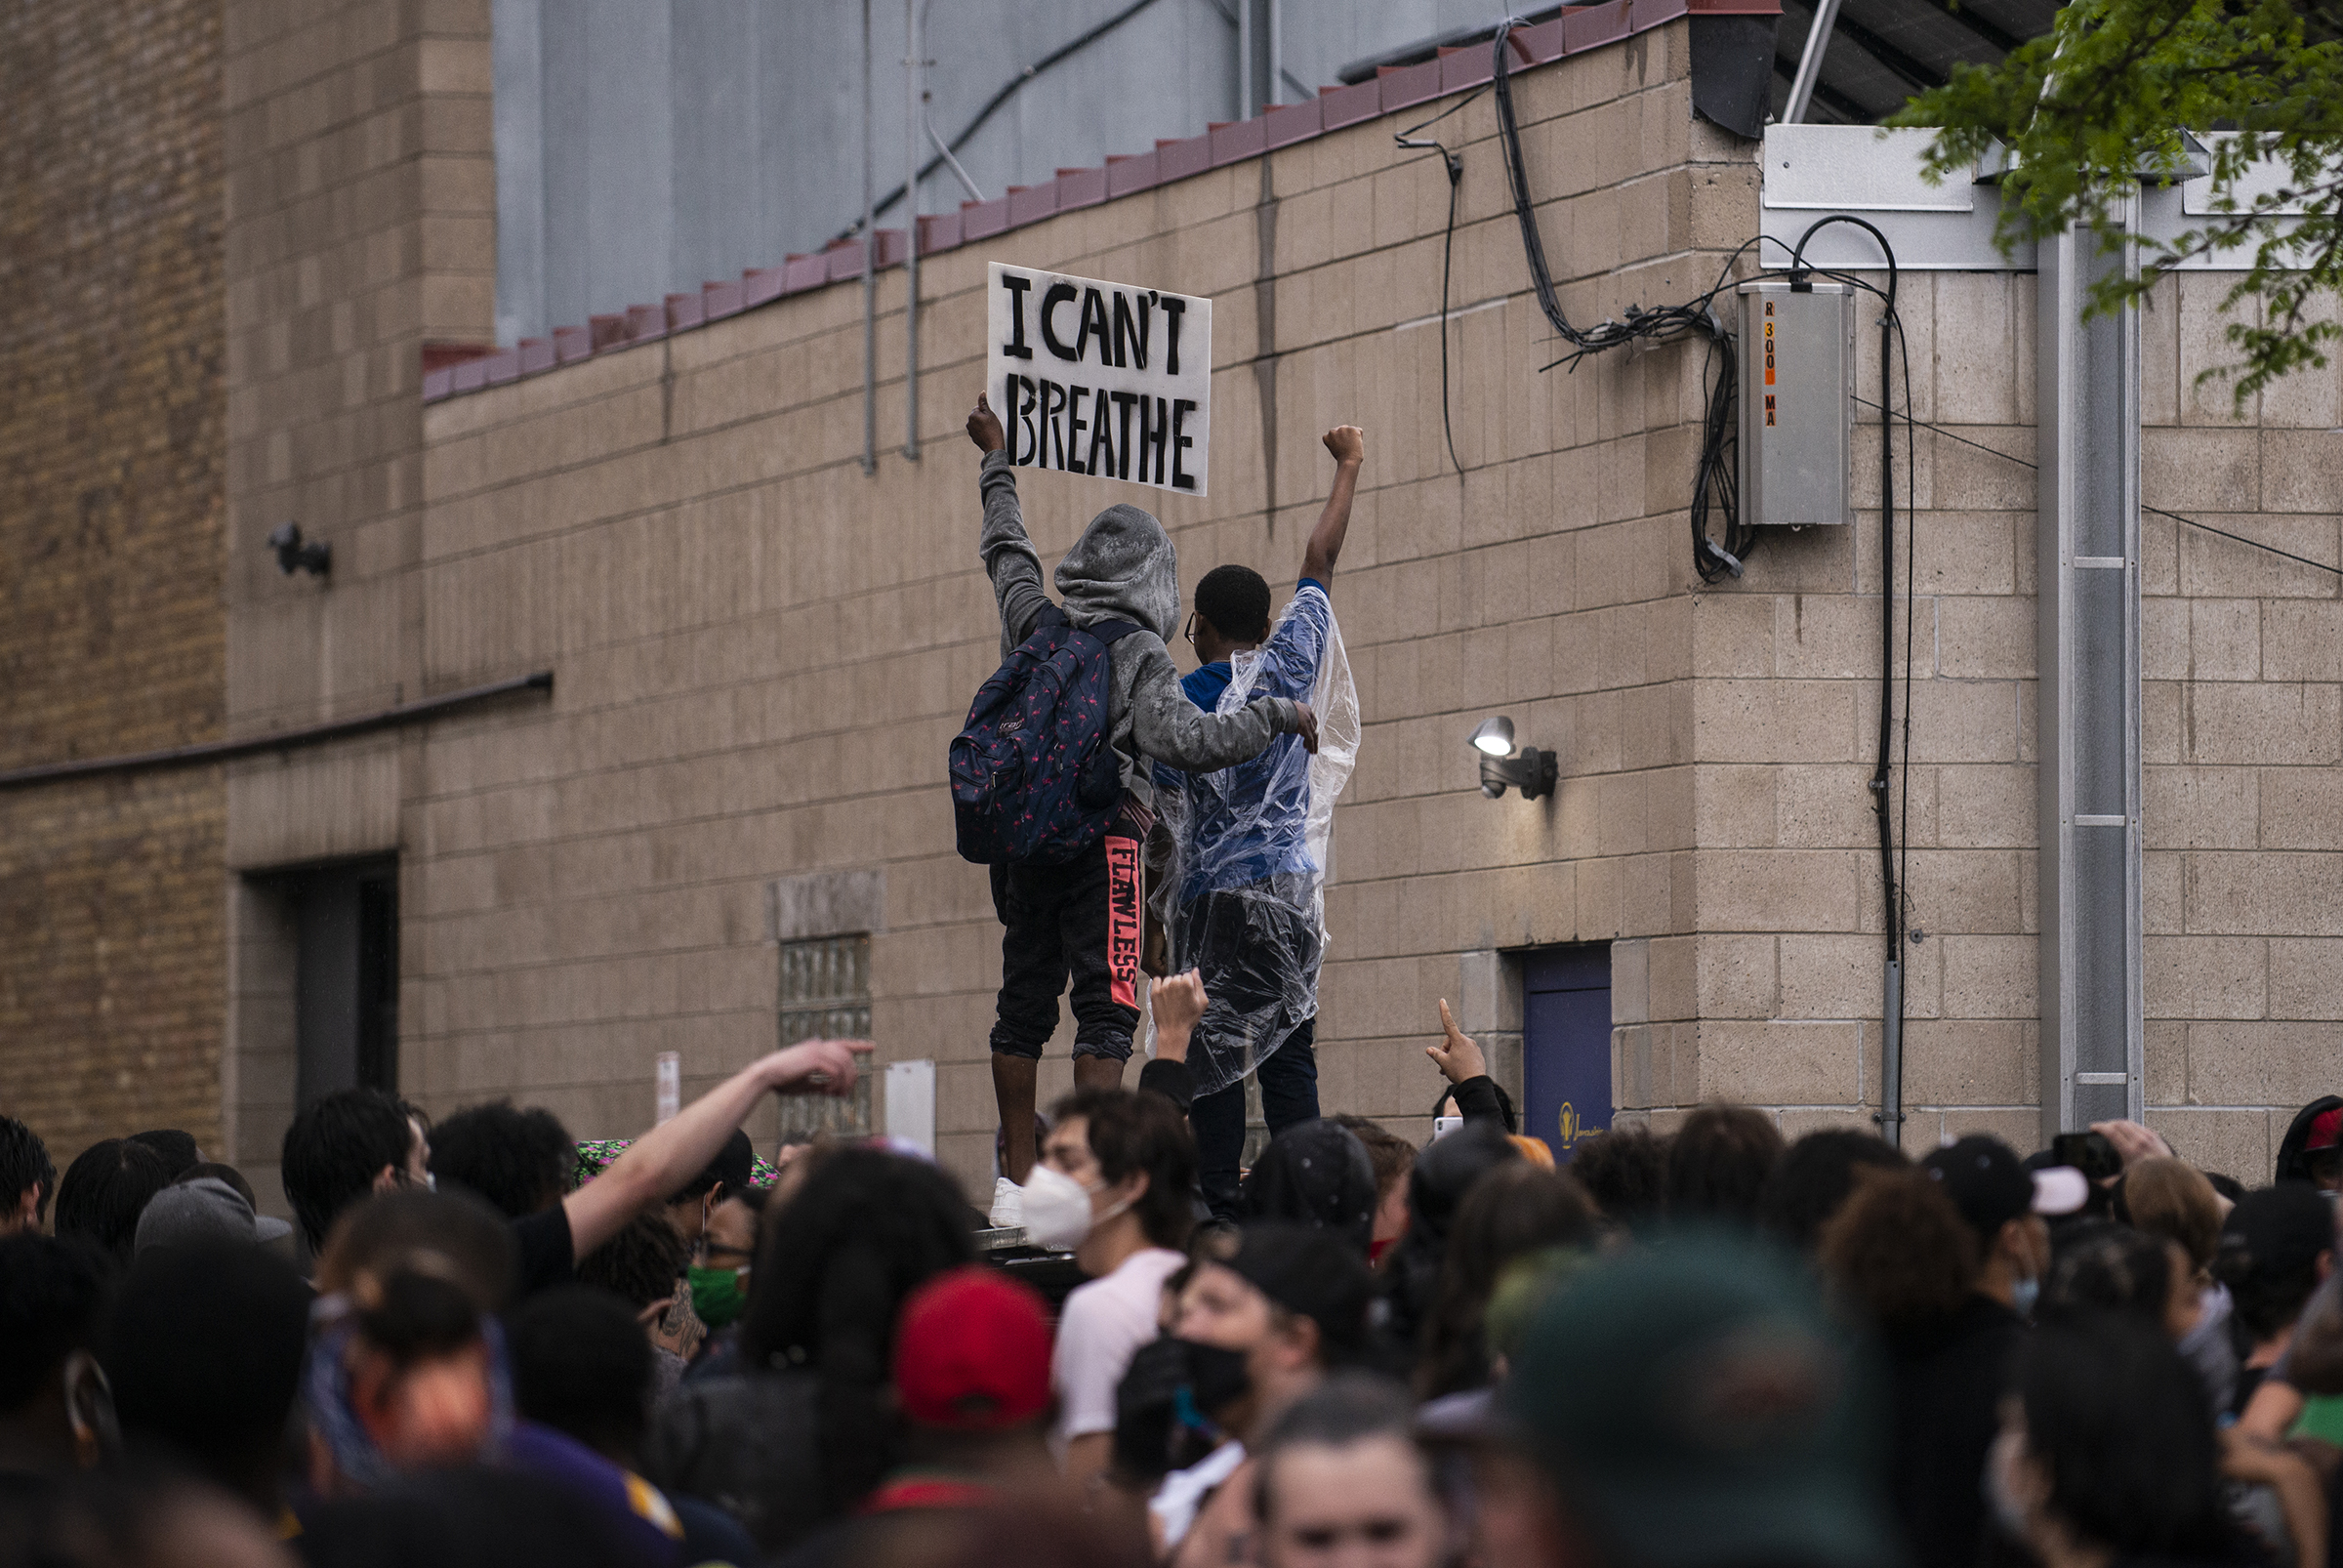 Protesters demonstrate against the death of George Floyd outside the 3rd precinct on May 26.